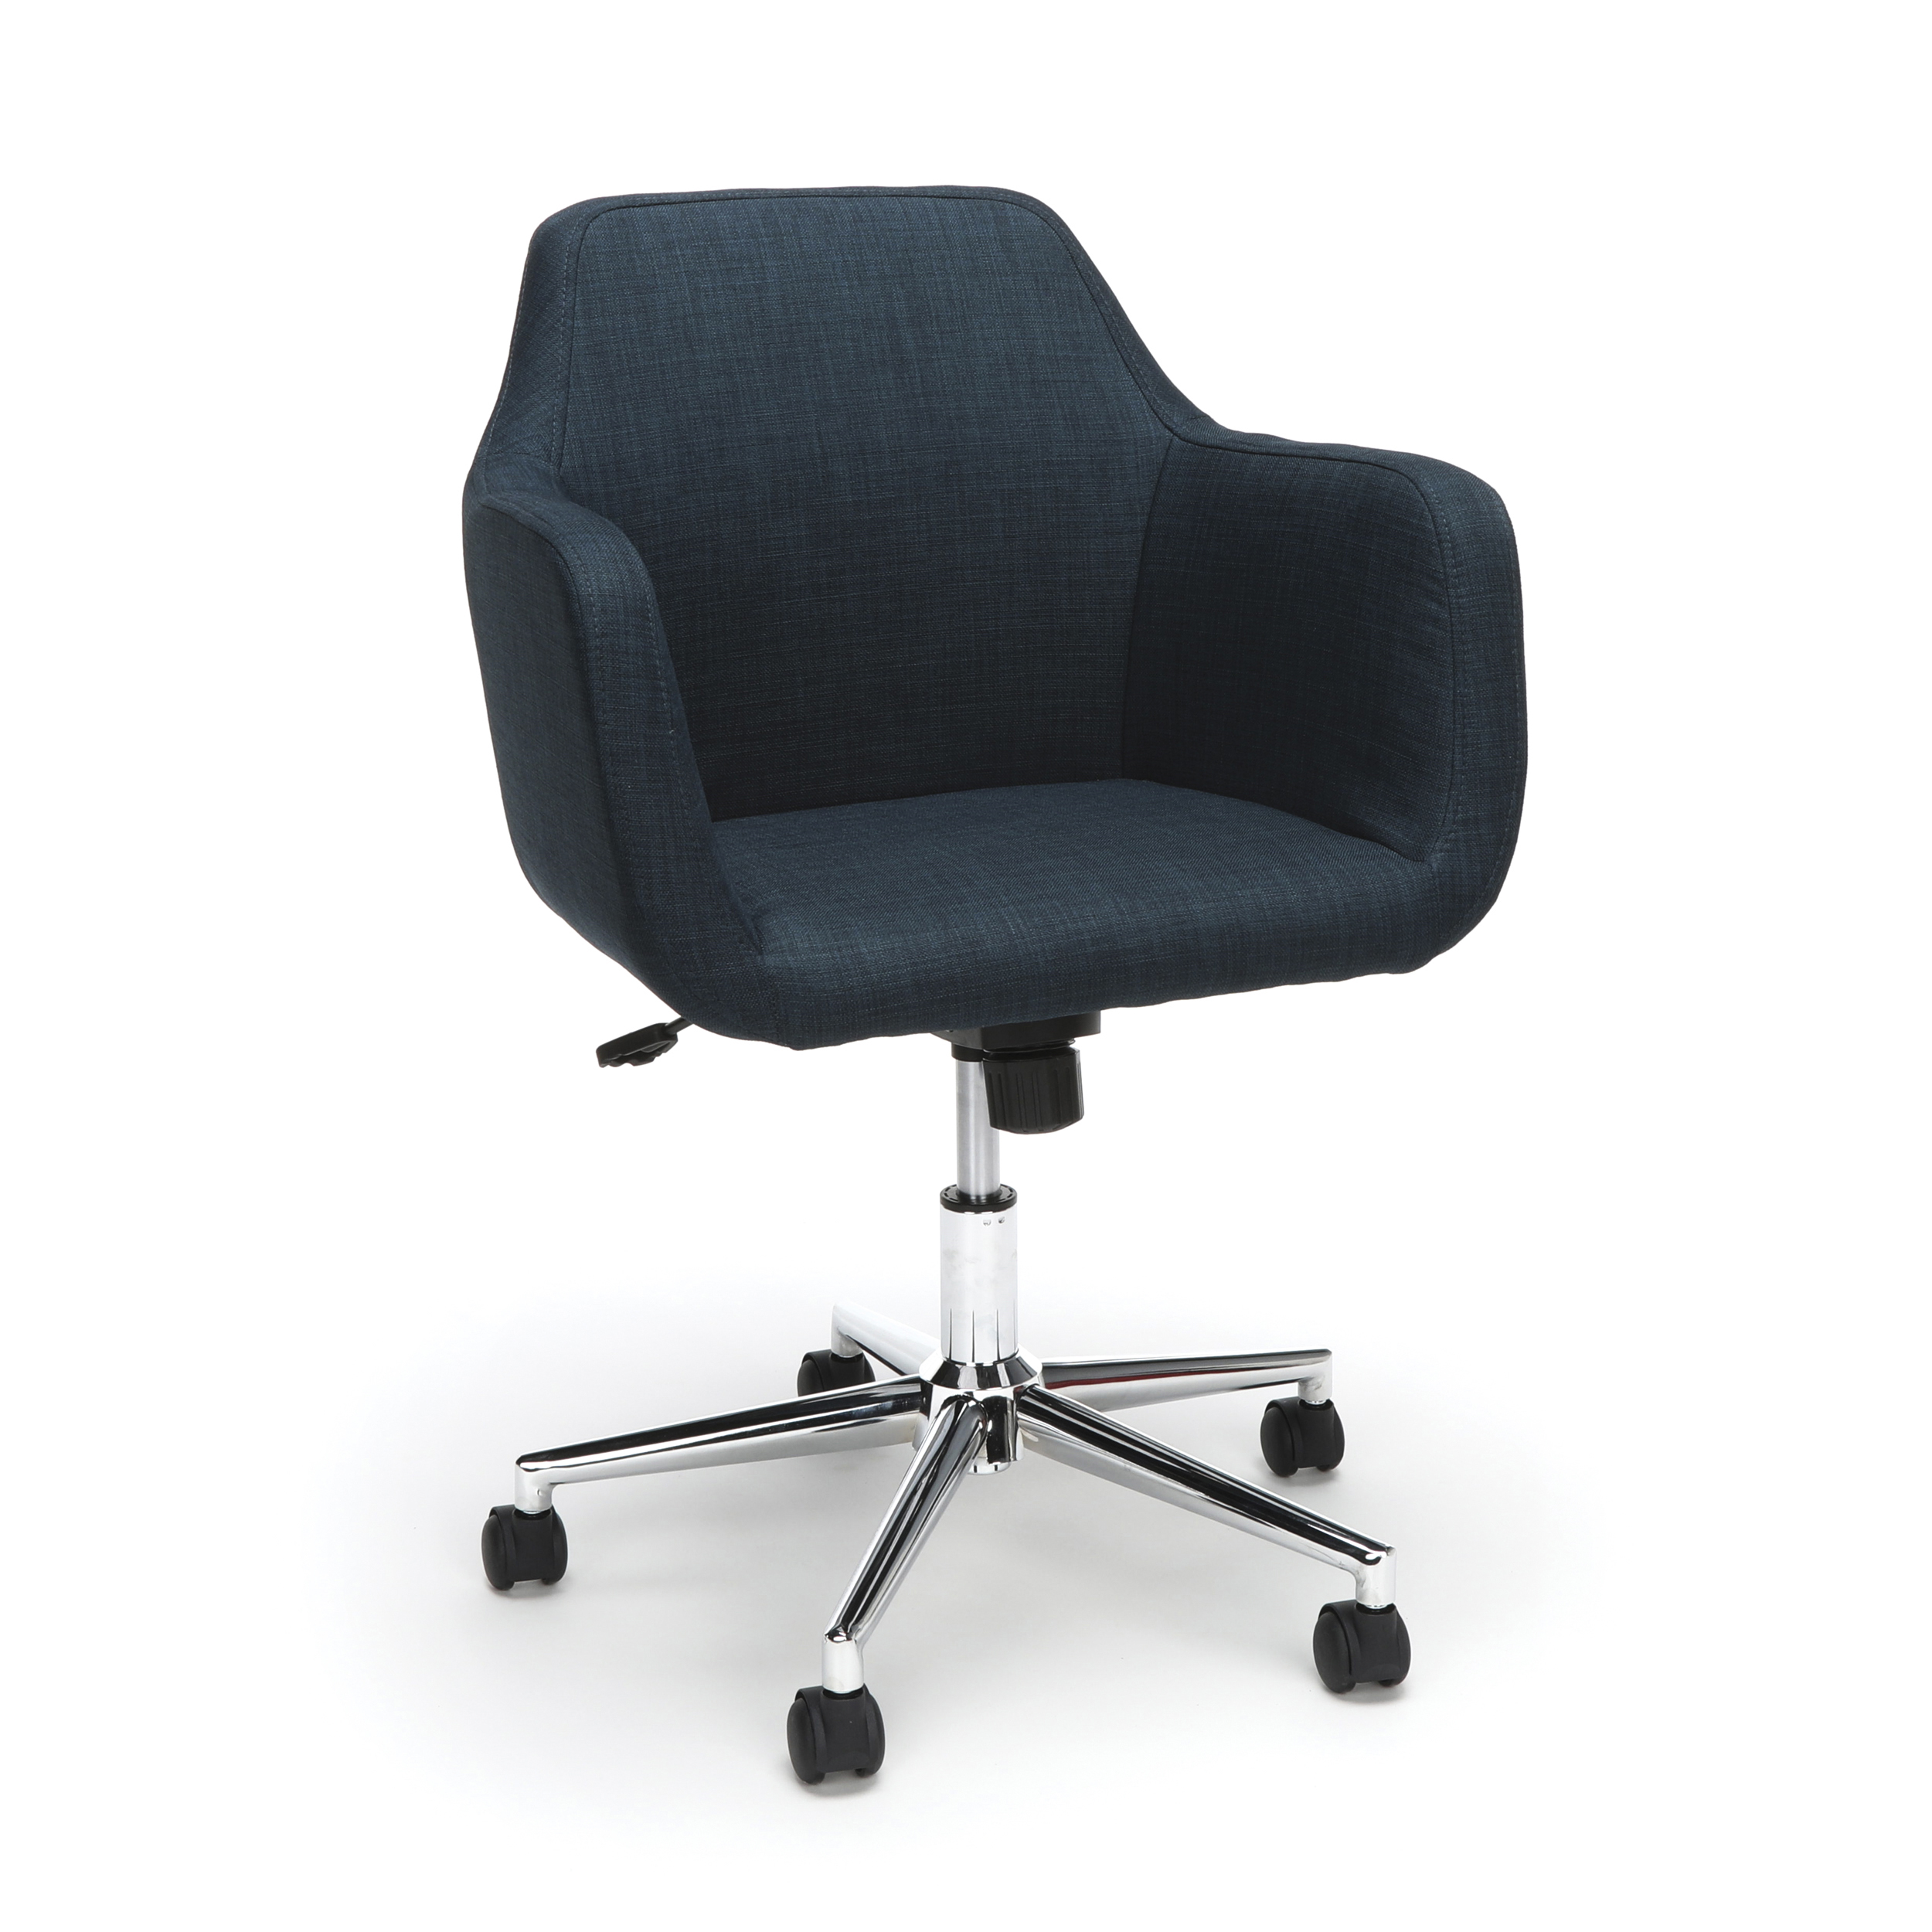 Ess 2085 Blu Office Furniture Essential Series Blue Fabric Upholstered Desk Chair With Chrome 5 Star Base Walmart Com Walmart Com